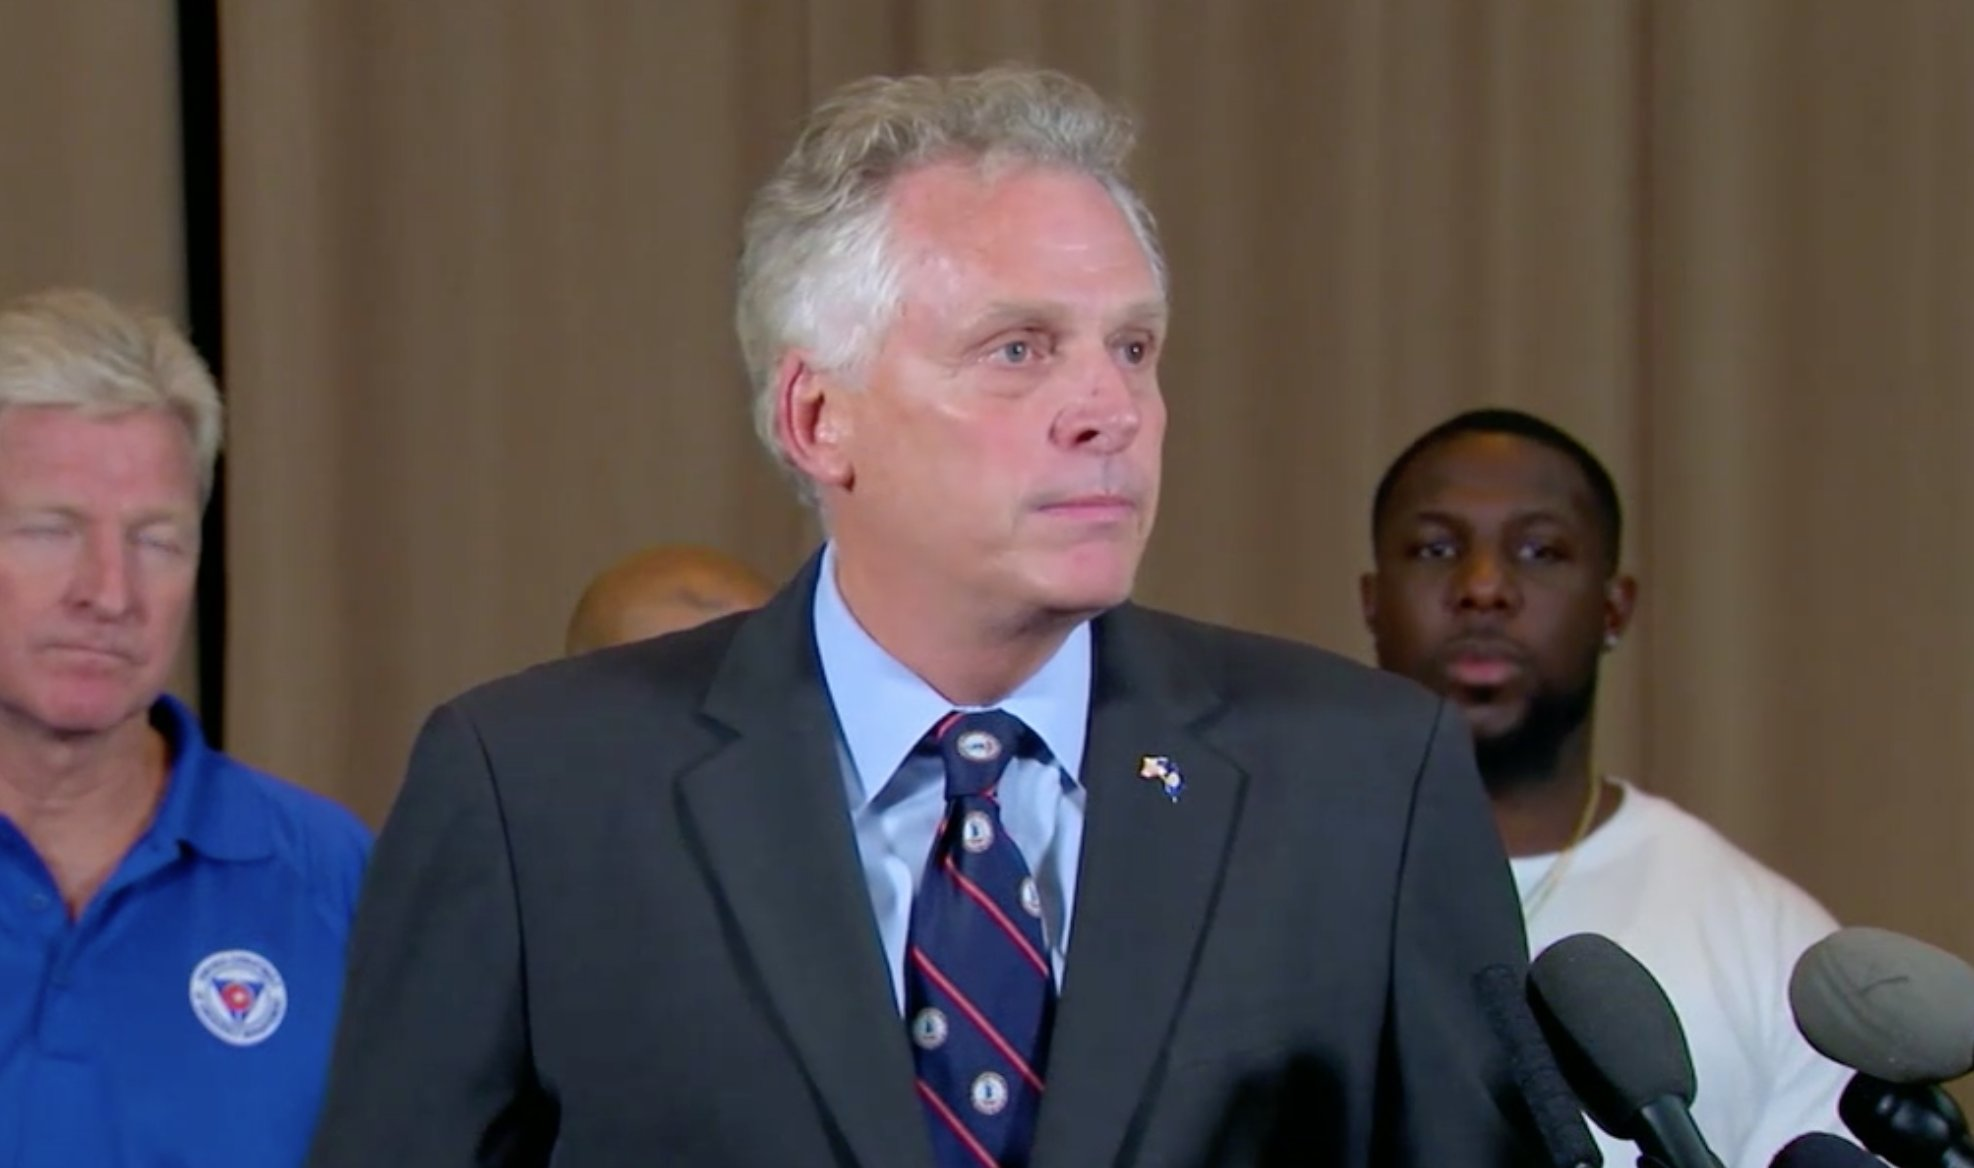 Virginia Gov. Terry McAuliffe to white nationalists: 'There is no place for you in America.' https://t.co/VNd7nBMCTH https://t.co/5yc4kTiIAv